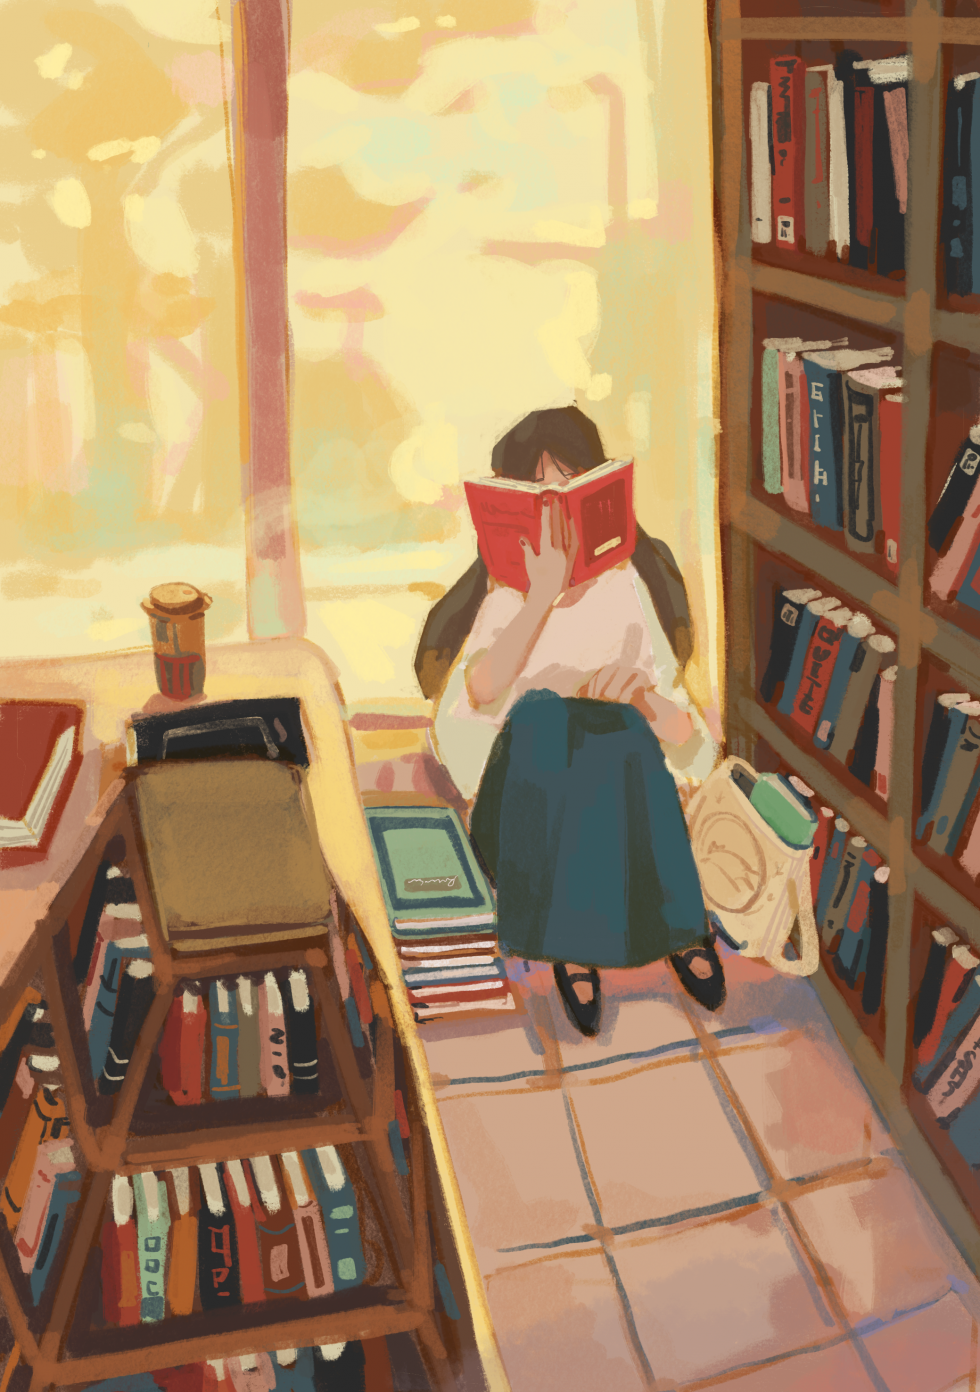 Digital Illustration about a girl reading a book in the corner of a bookstore